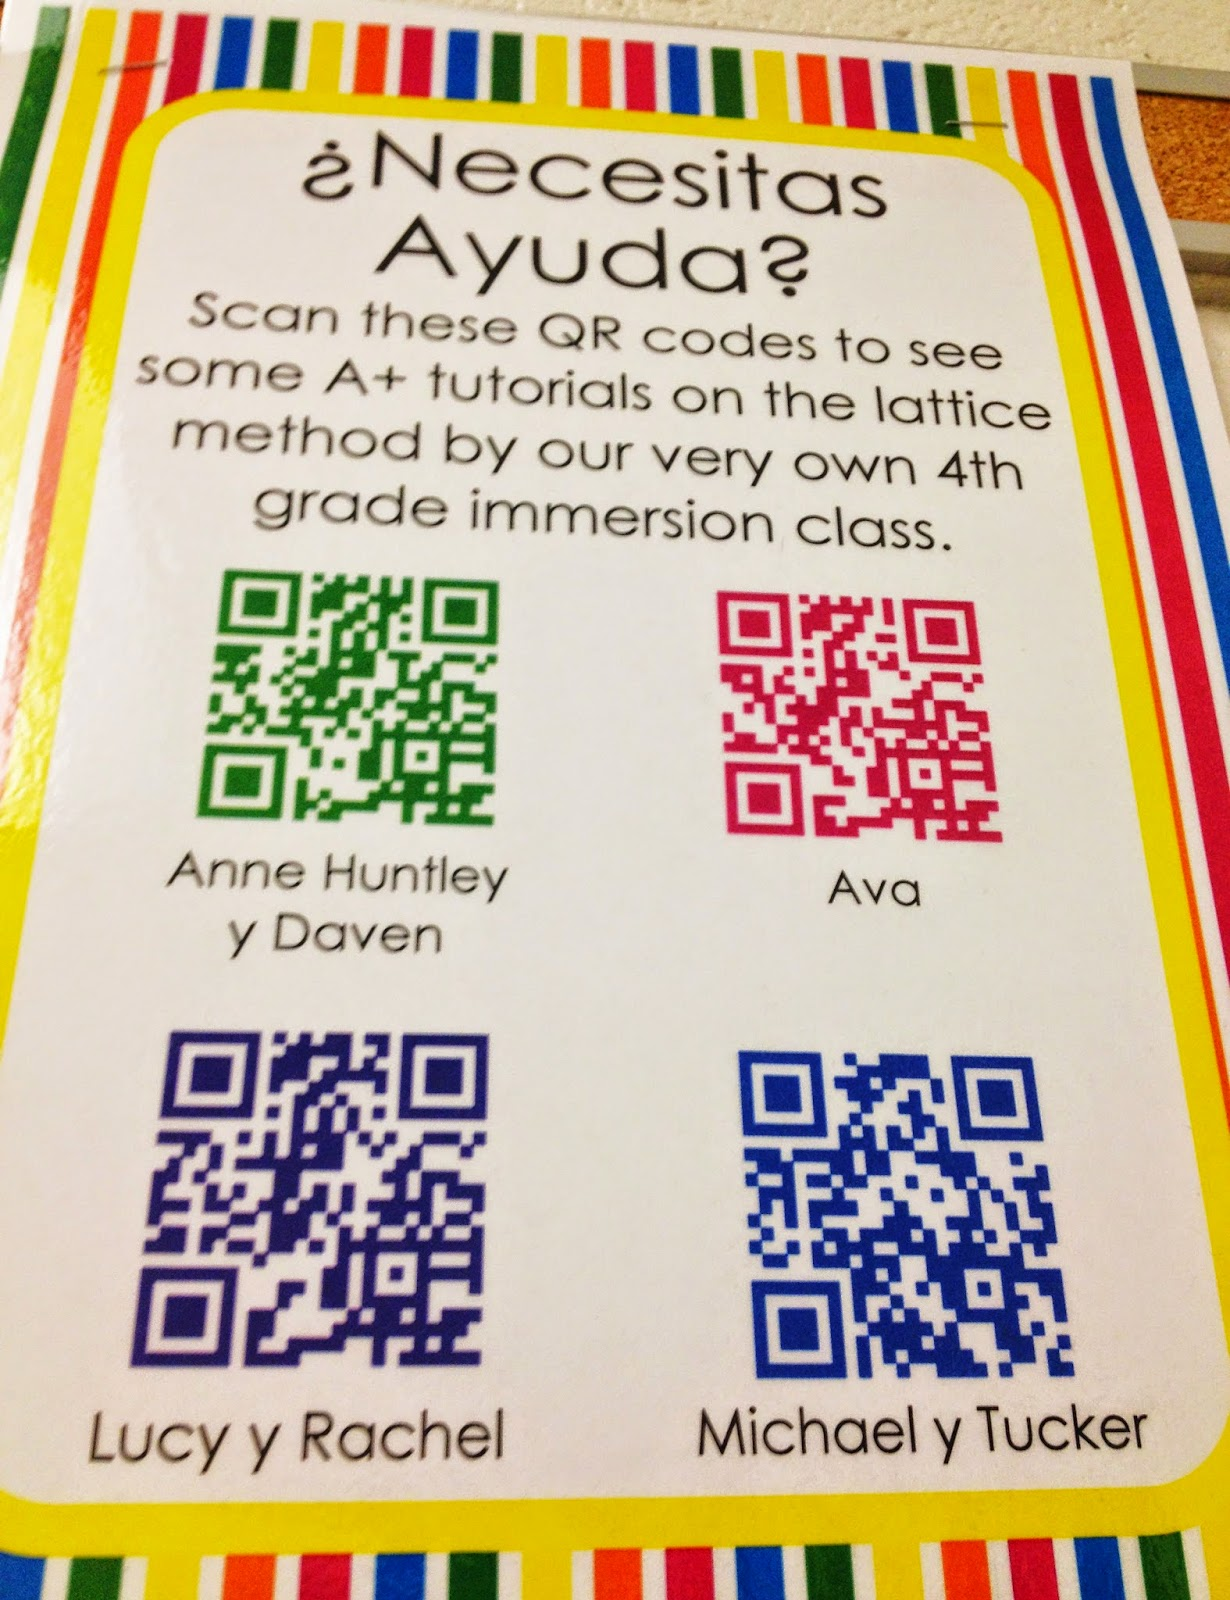 https://www.flapjackeducation.com/2013/09/create-qr-codes-of-student.html